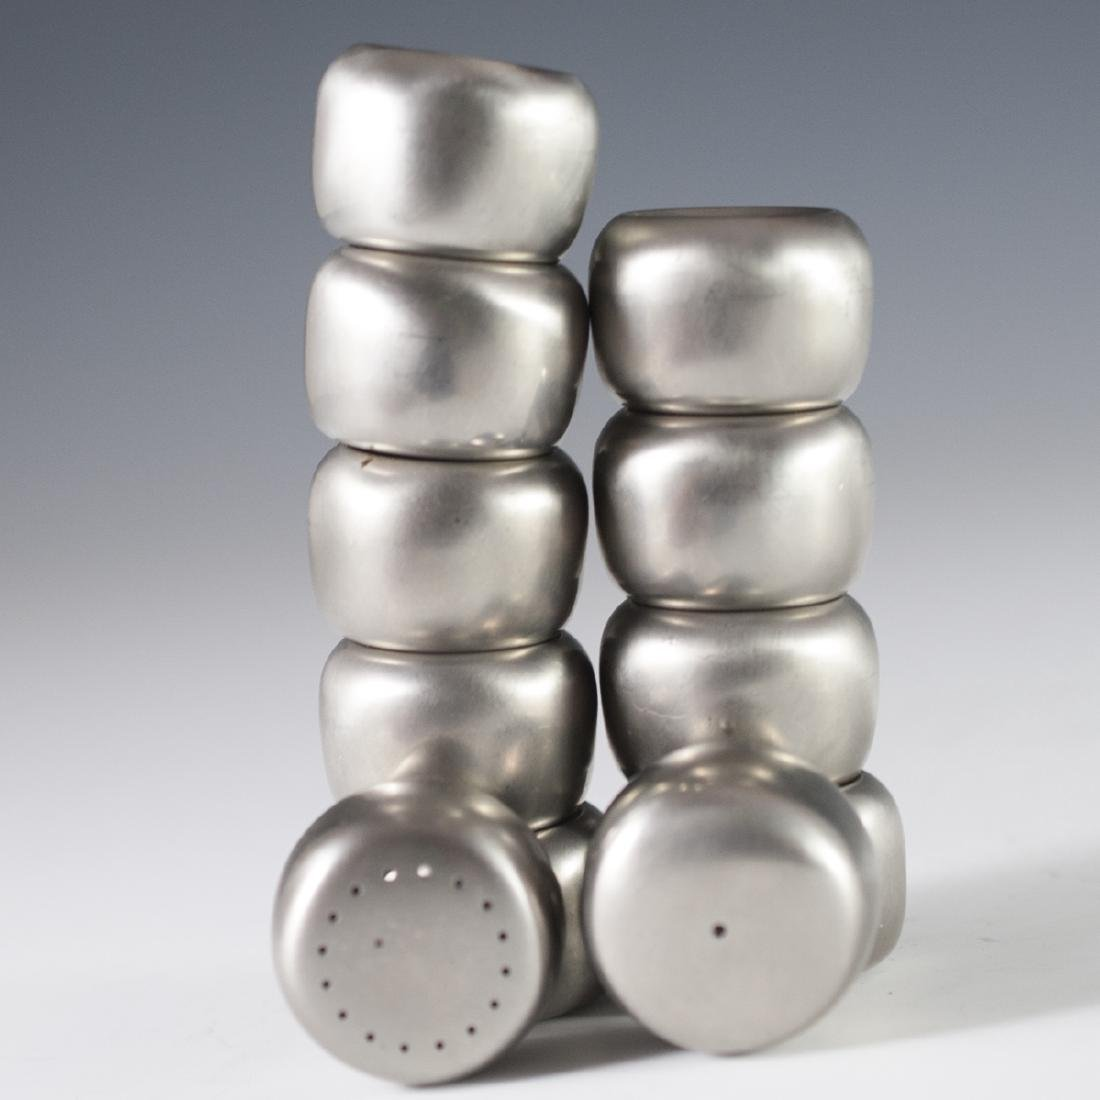 Georg Jensen Stainless Steel Salt & Pepper Shakers